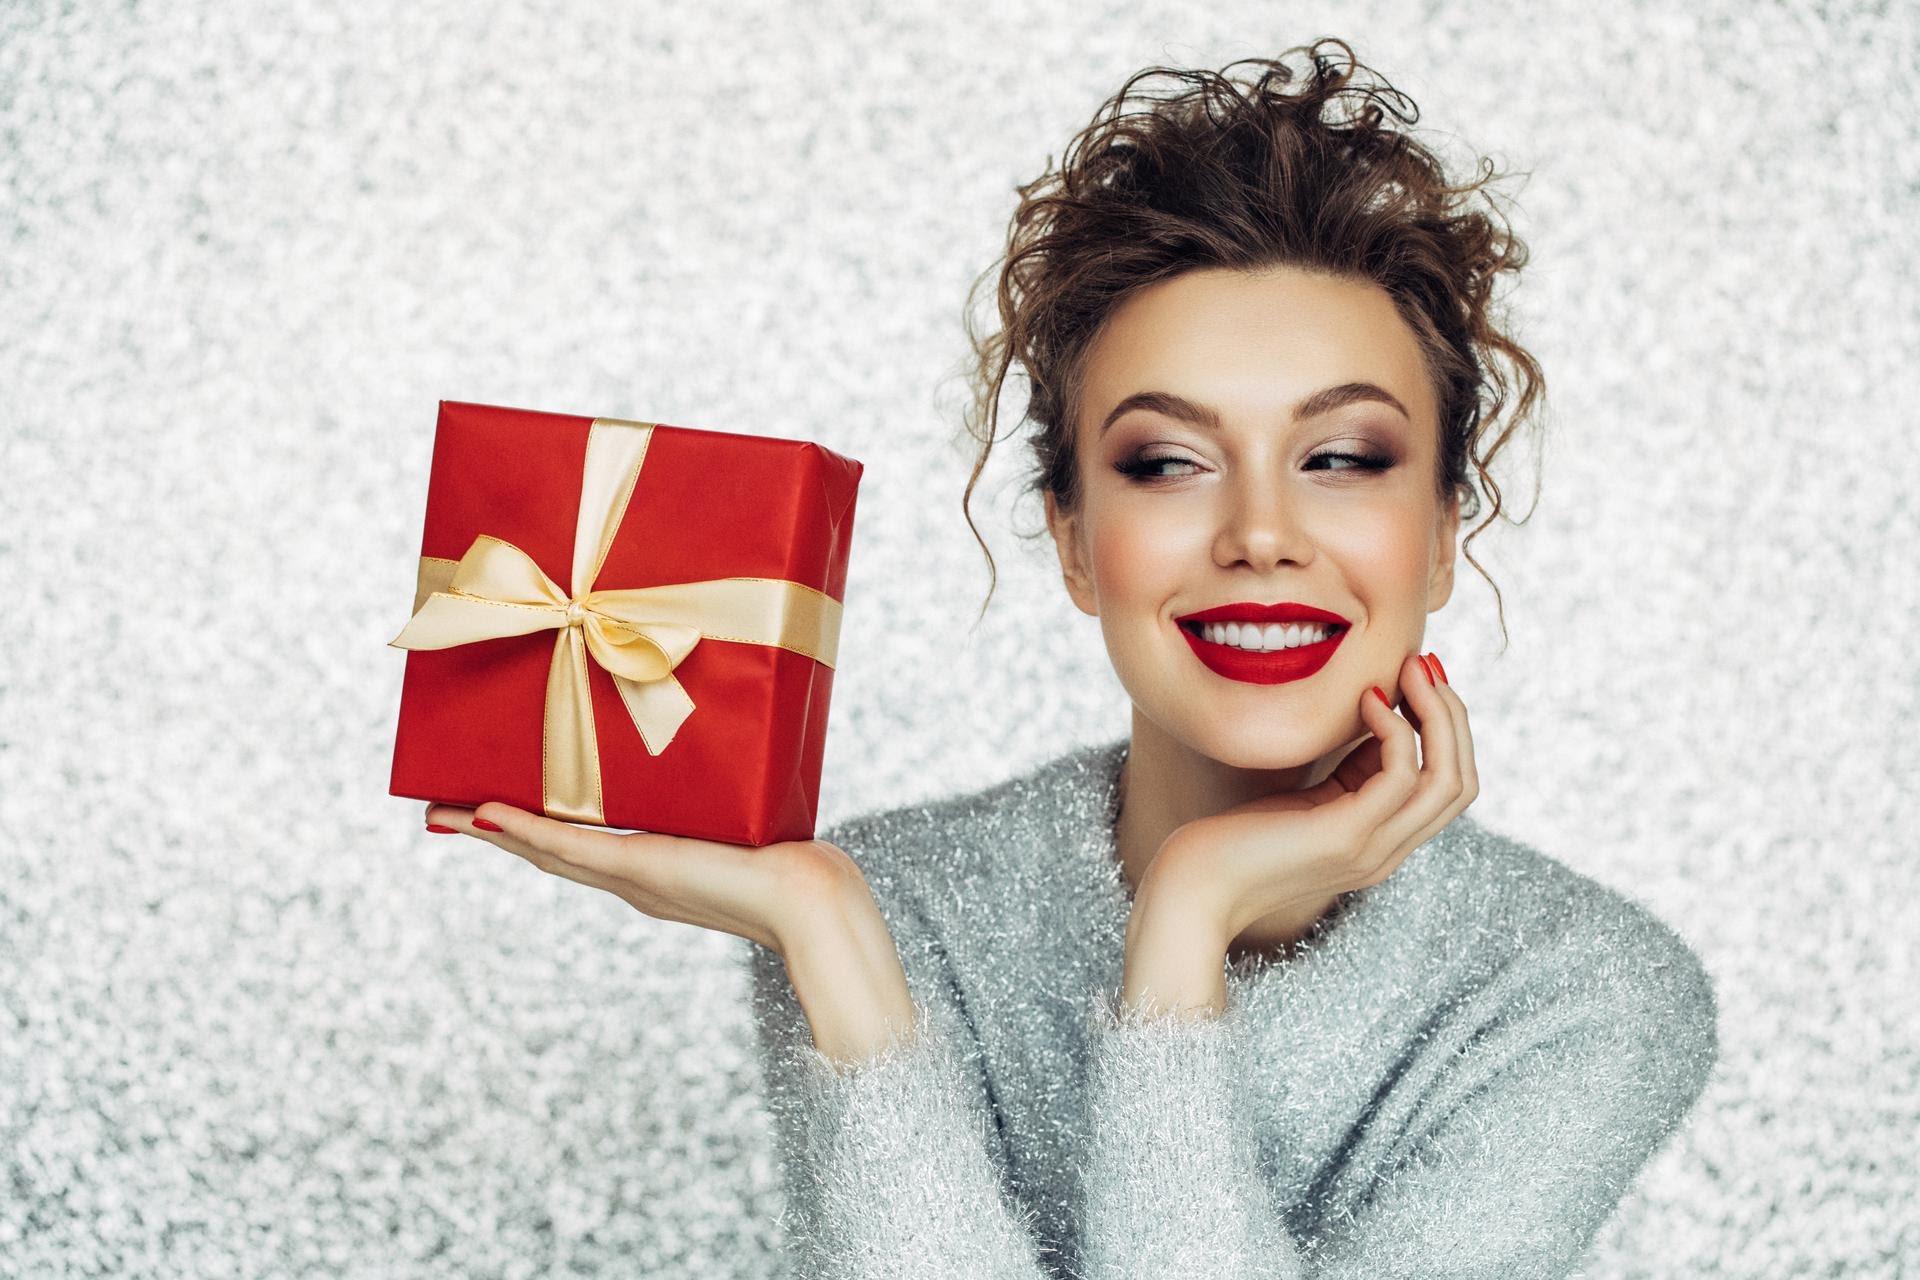 Tis the Season for Giving with Our Spa-La-La Promotion